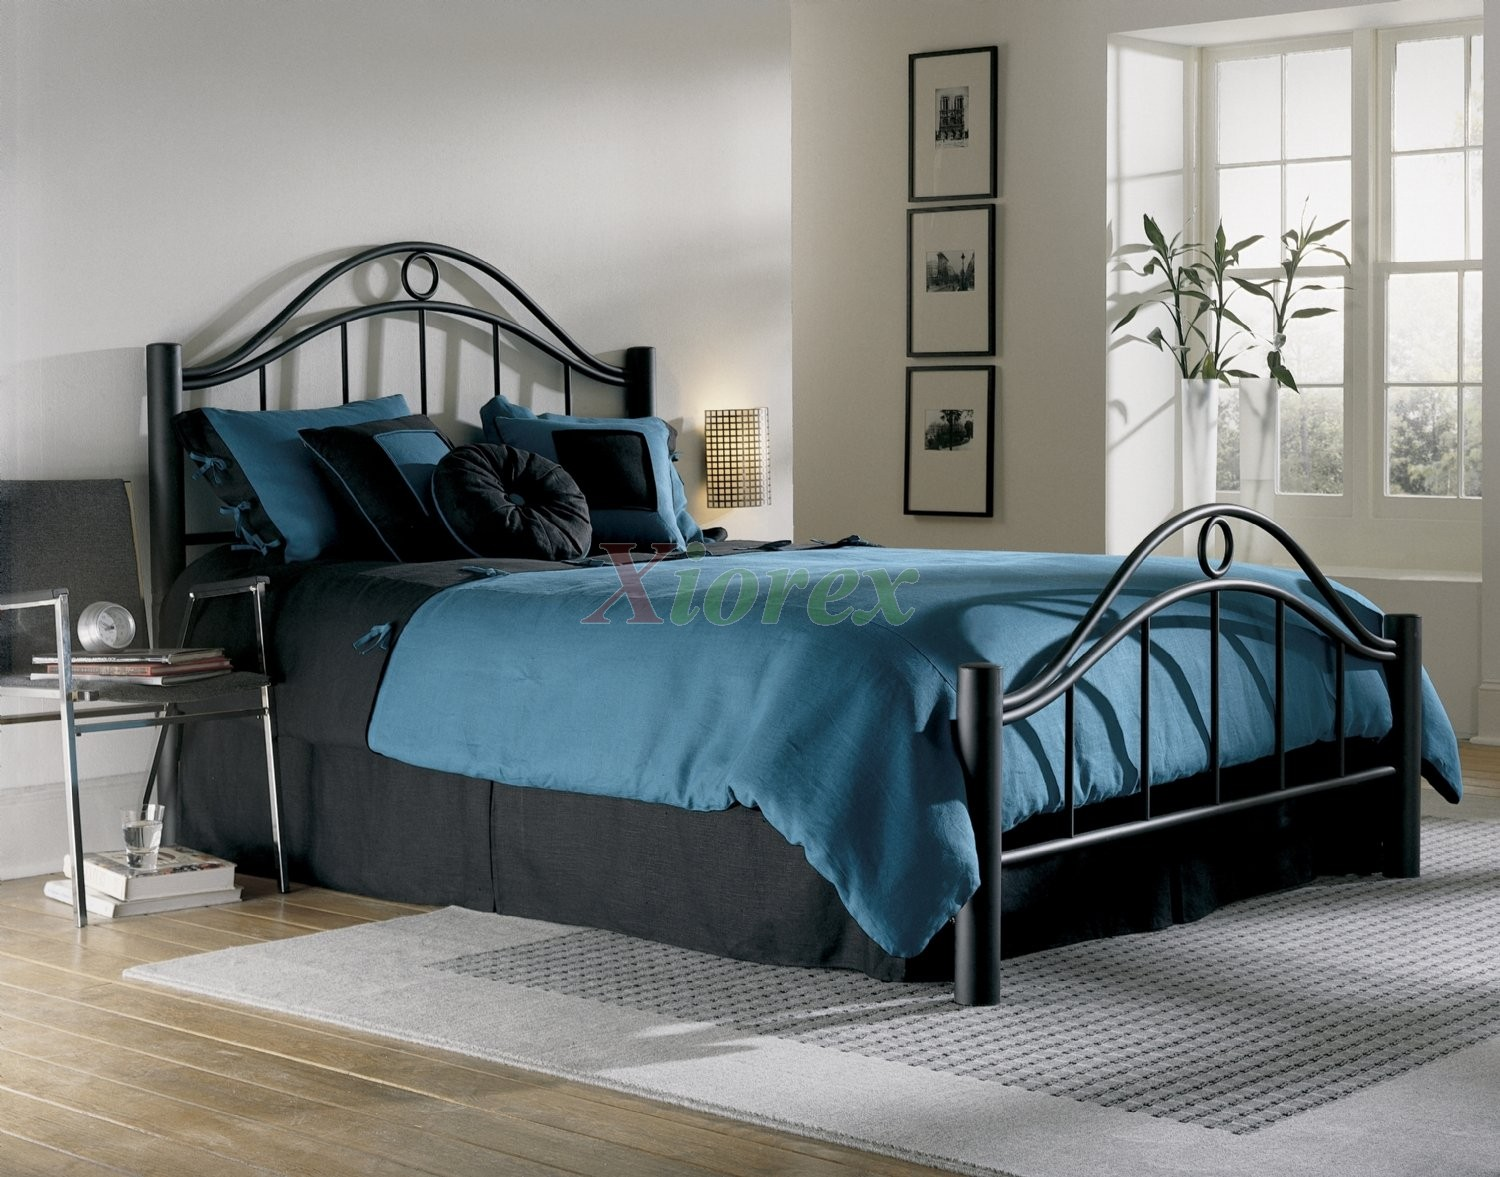 Linden bed metal bed w frame in matte ebony finish by for Metal bedroom furniture